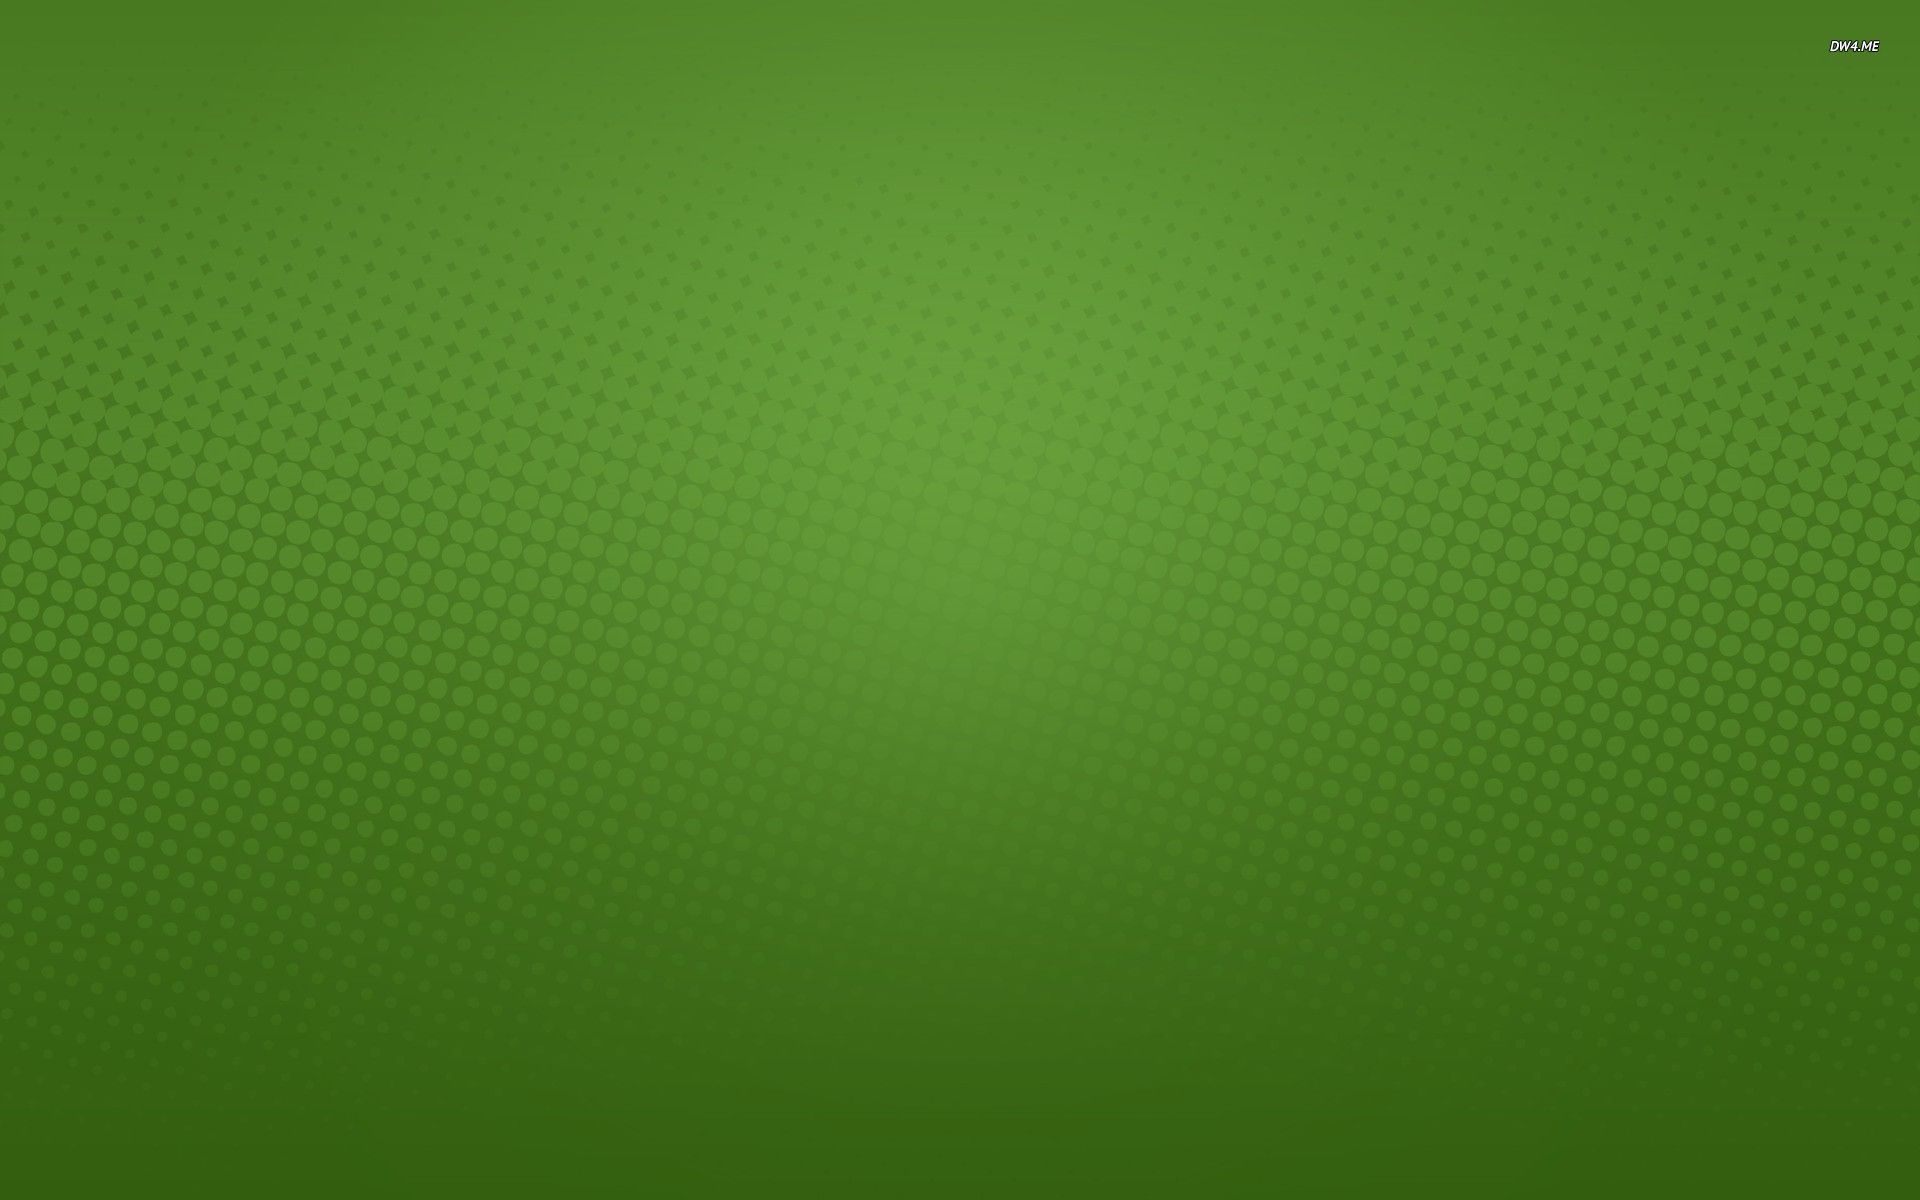 Solid green desktop wallpaper